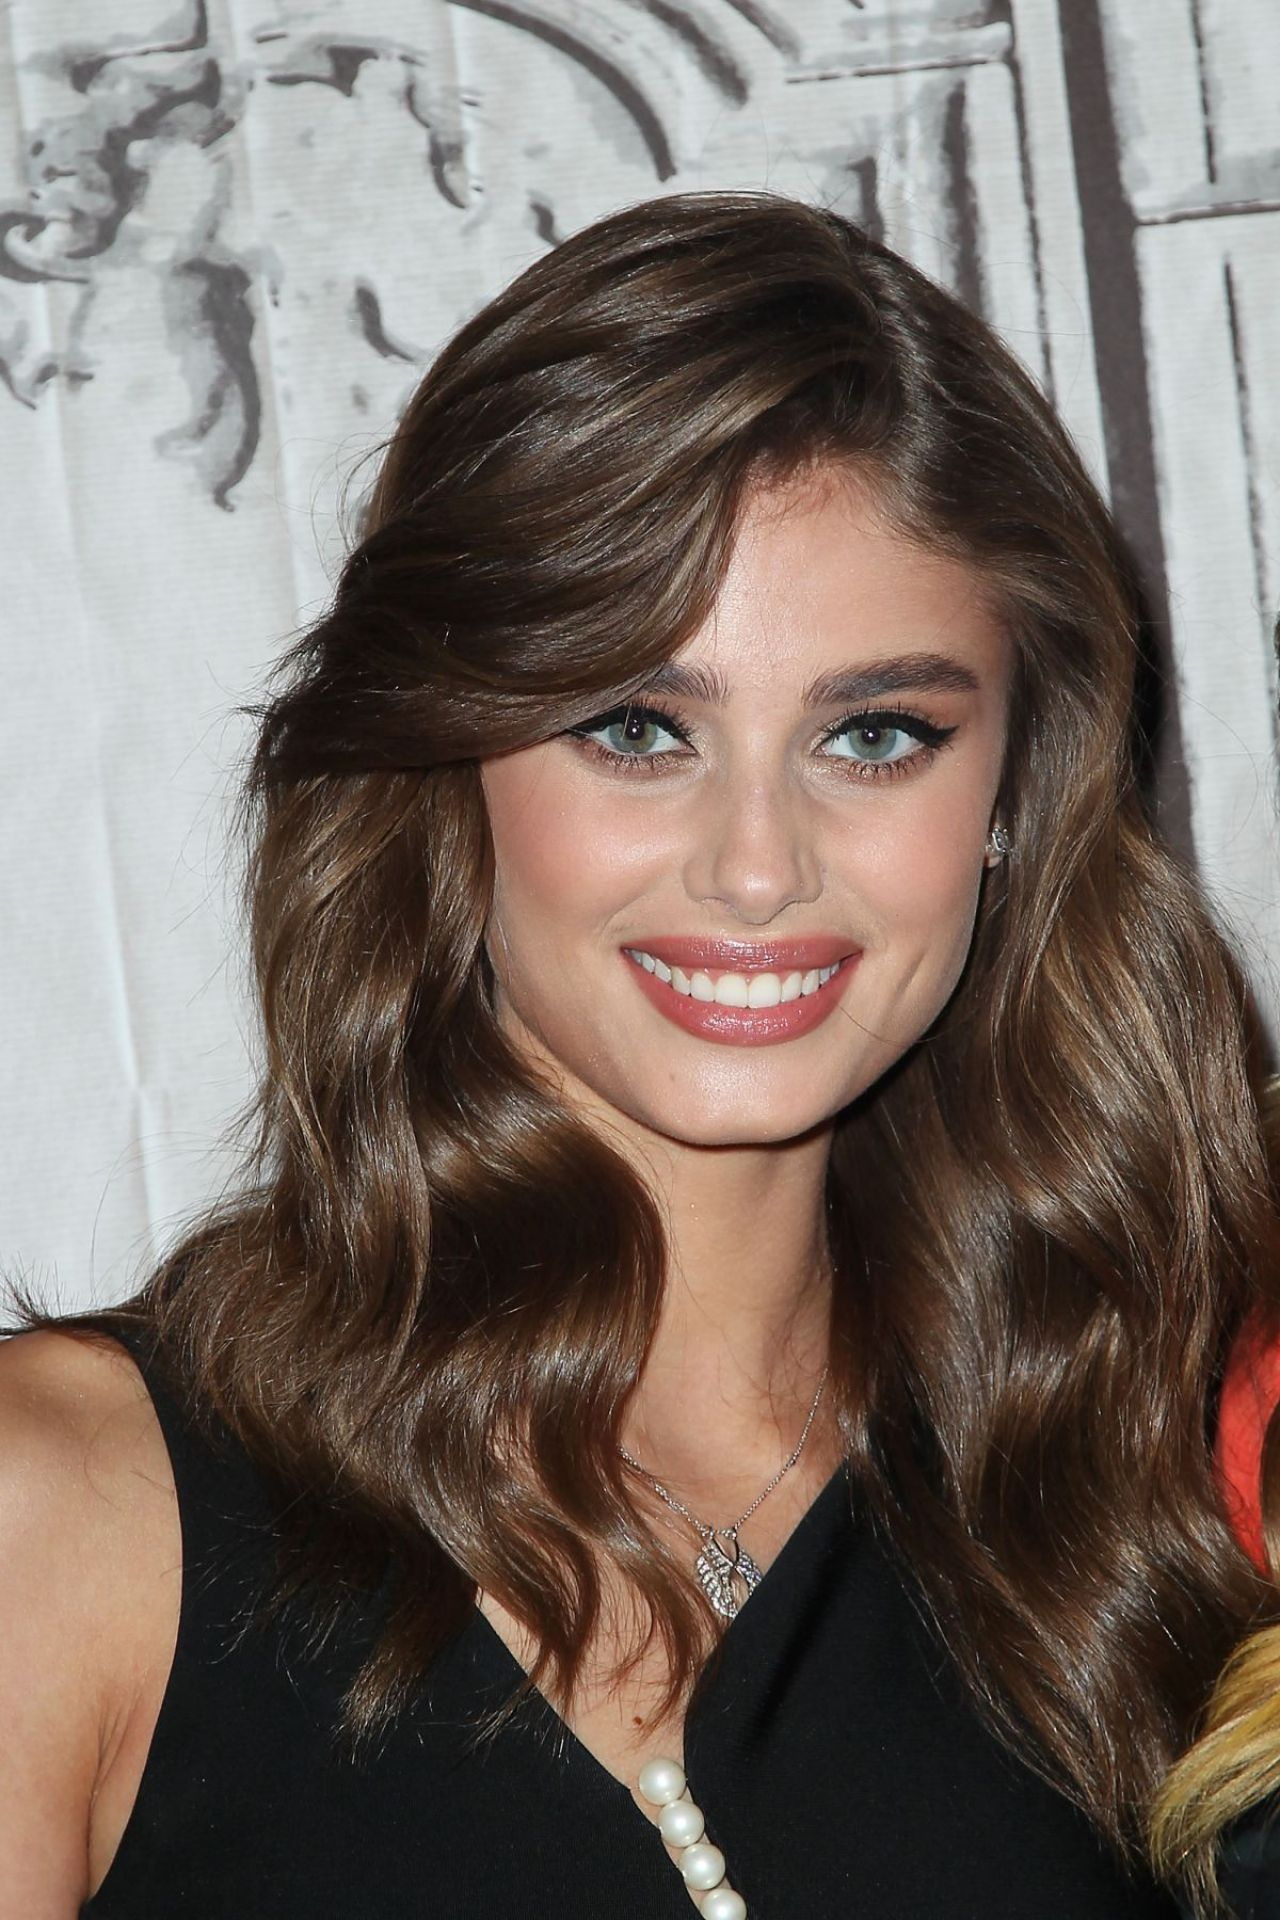 Taylor marie hill google search female faces pinterest taylor marie hill google search altavistaventures Choice Image